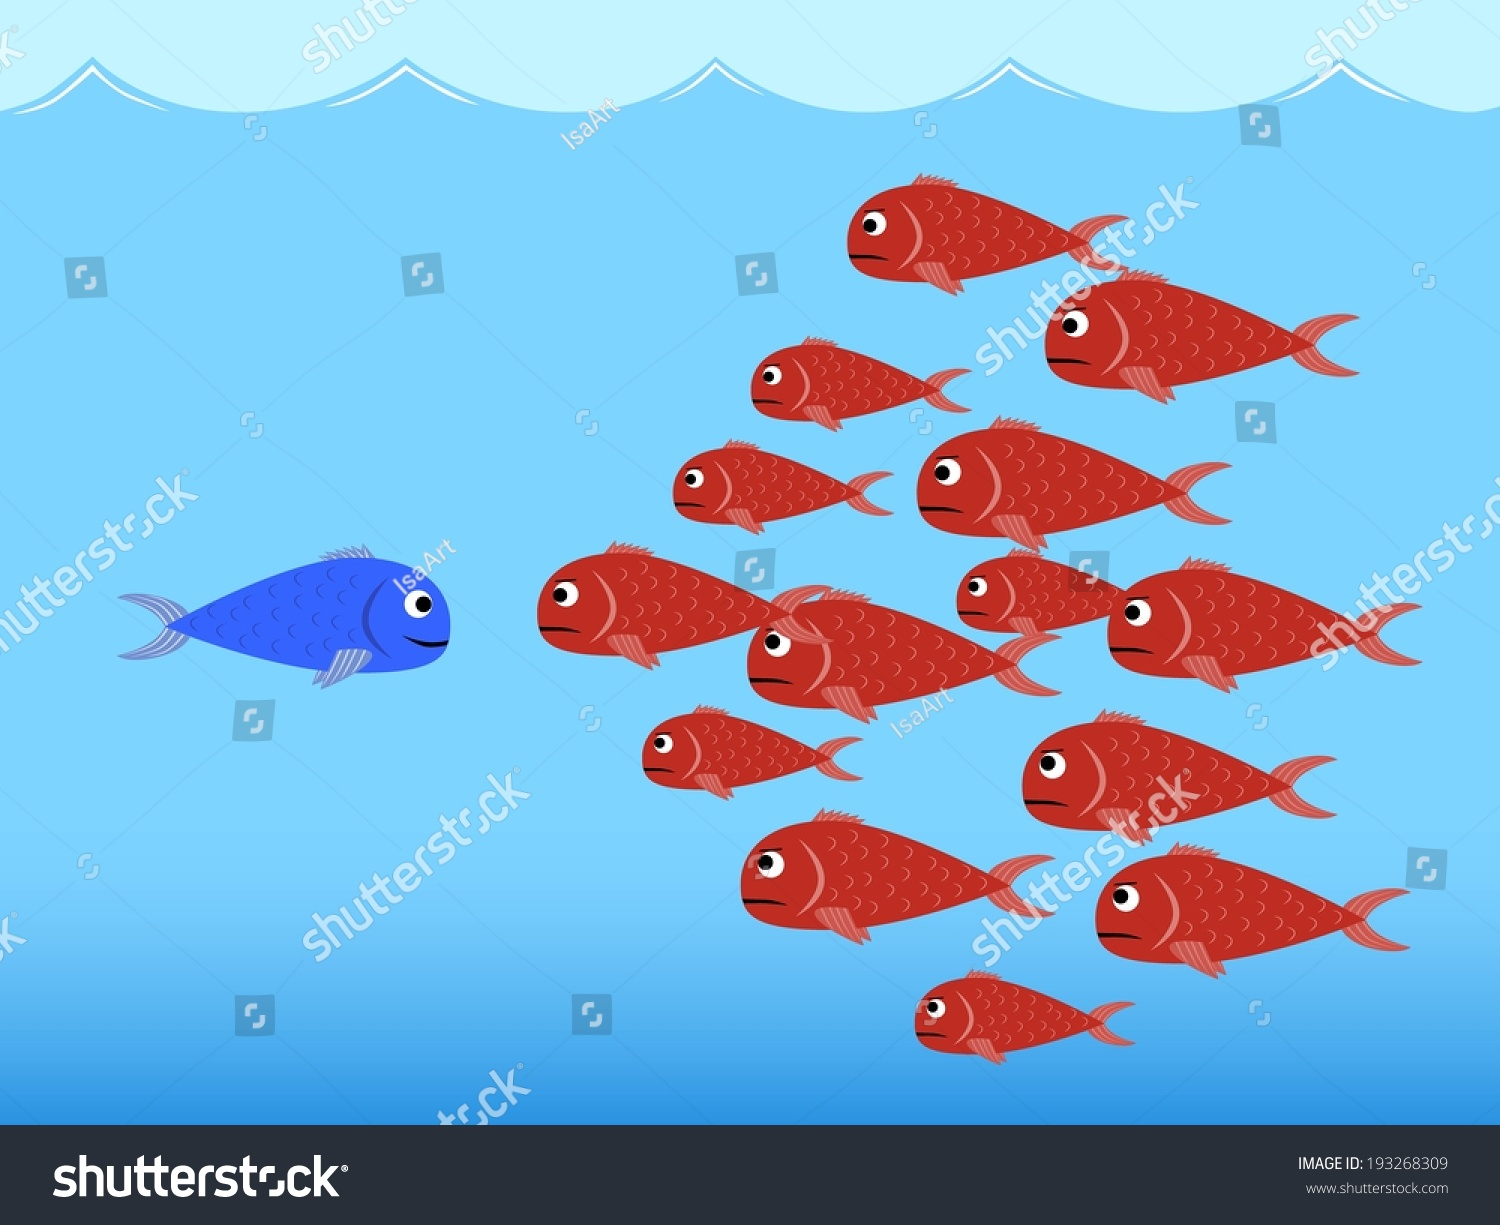 Illustration Vector Competition Between Red Fishes Stock Vector HD ...